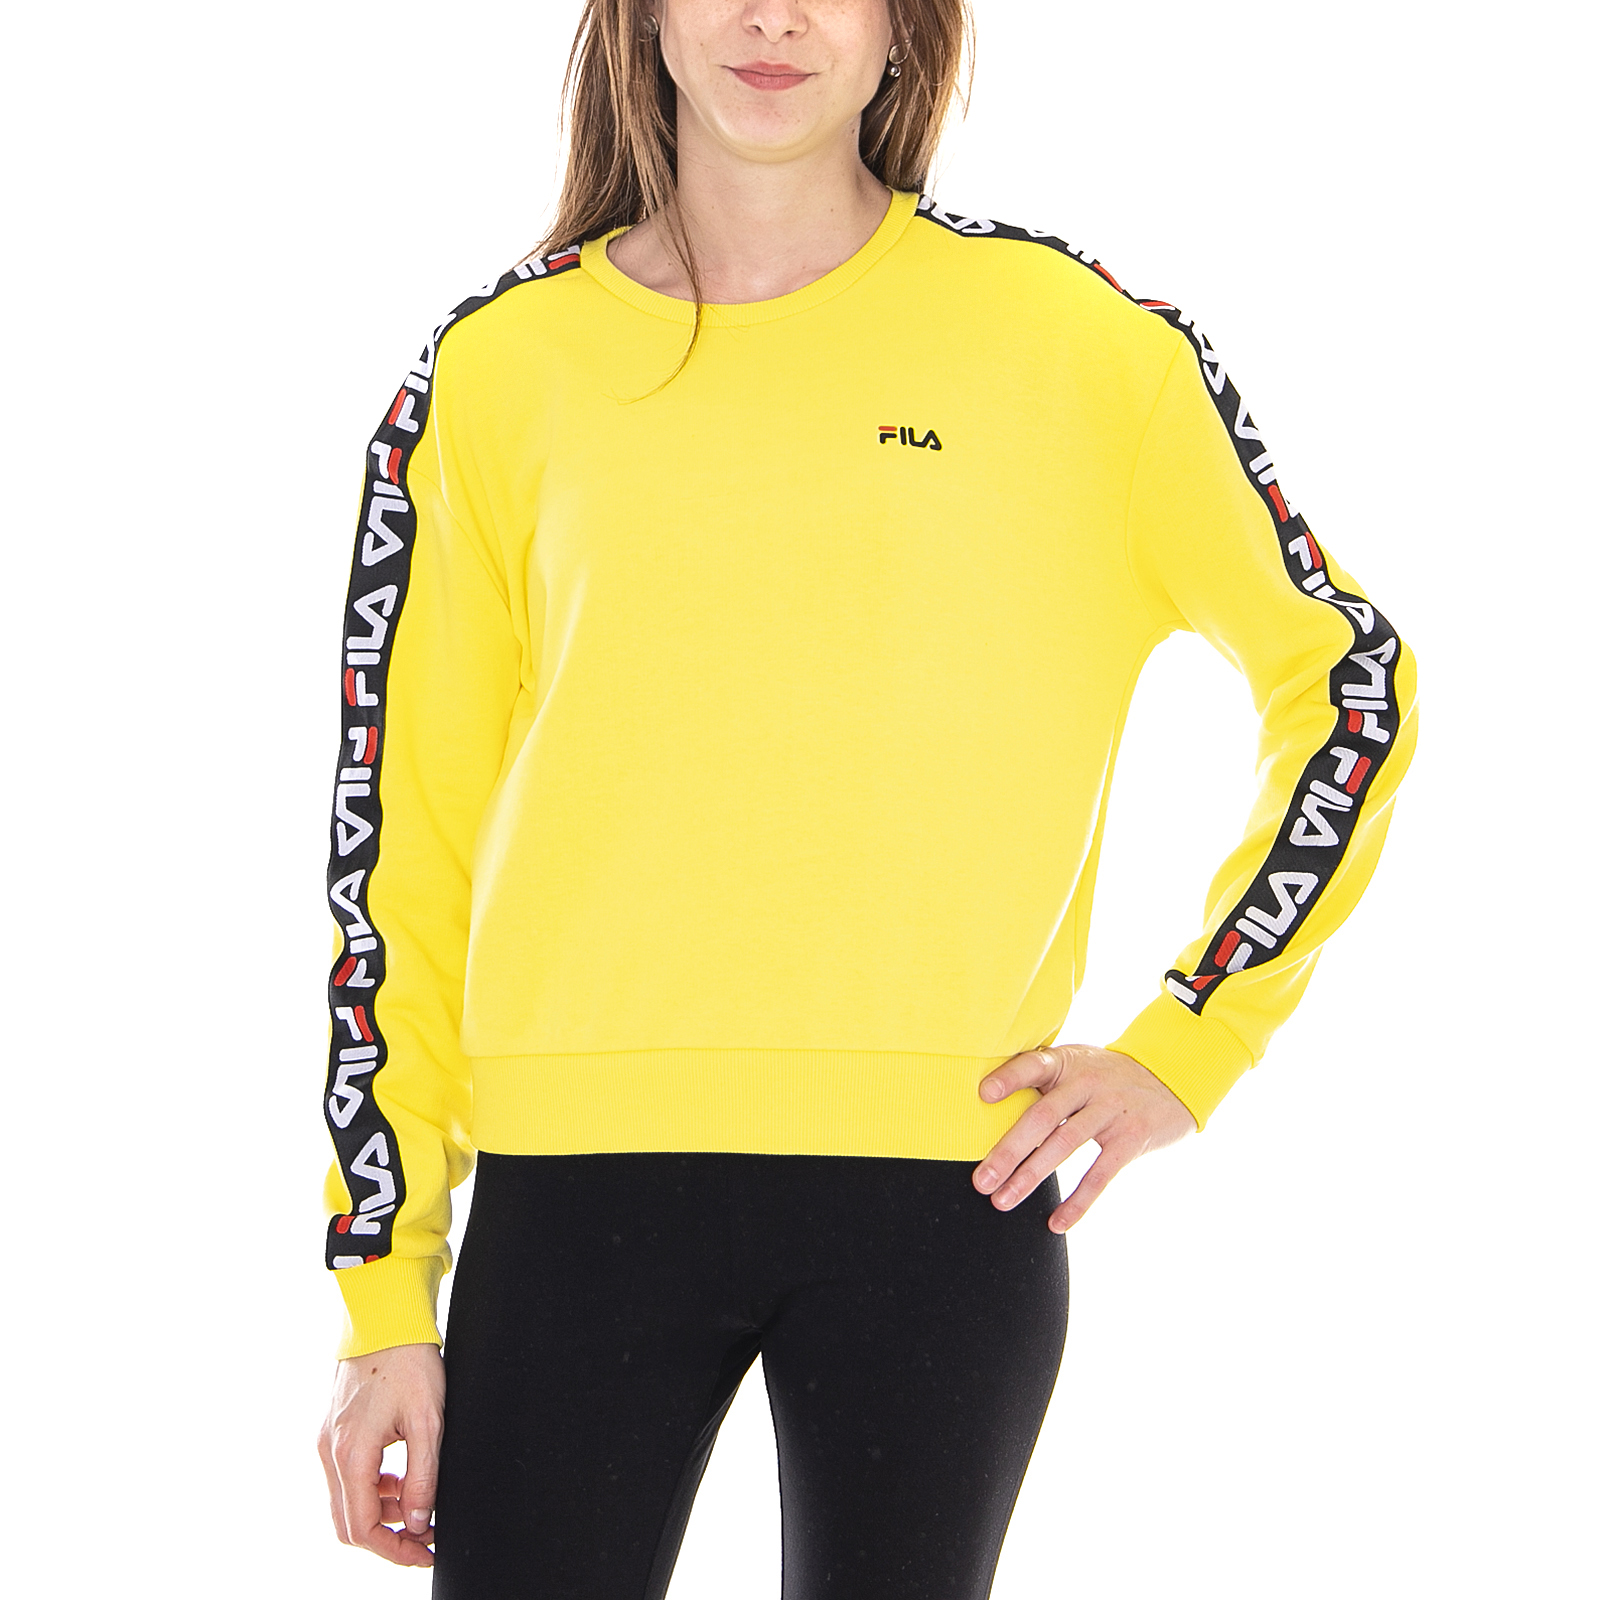 fila sweatshirts femmes tivka crew sweat vibrant jaune jaune ebay. Black Bedroom Furniture Sets. Home Design Ideas